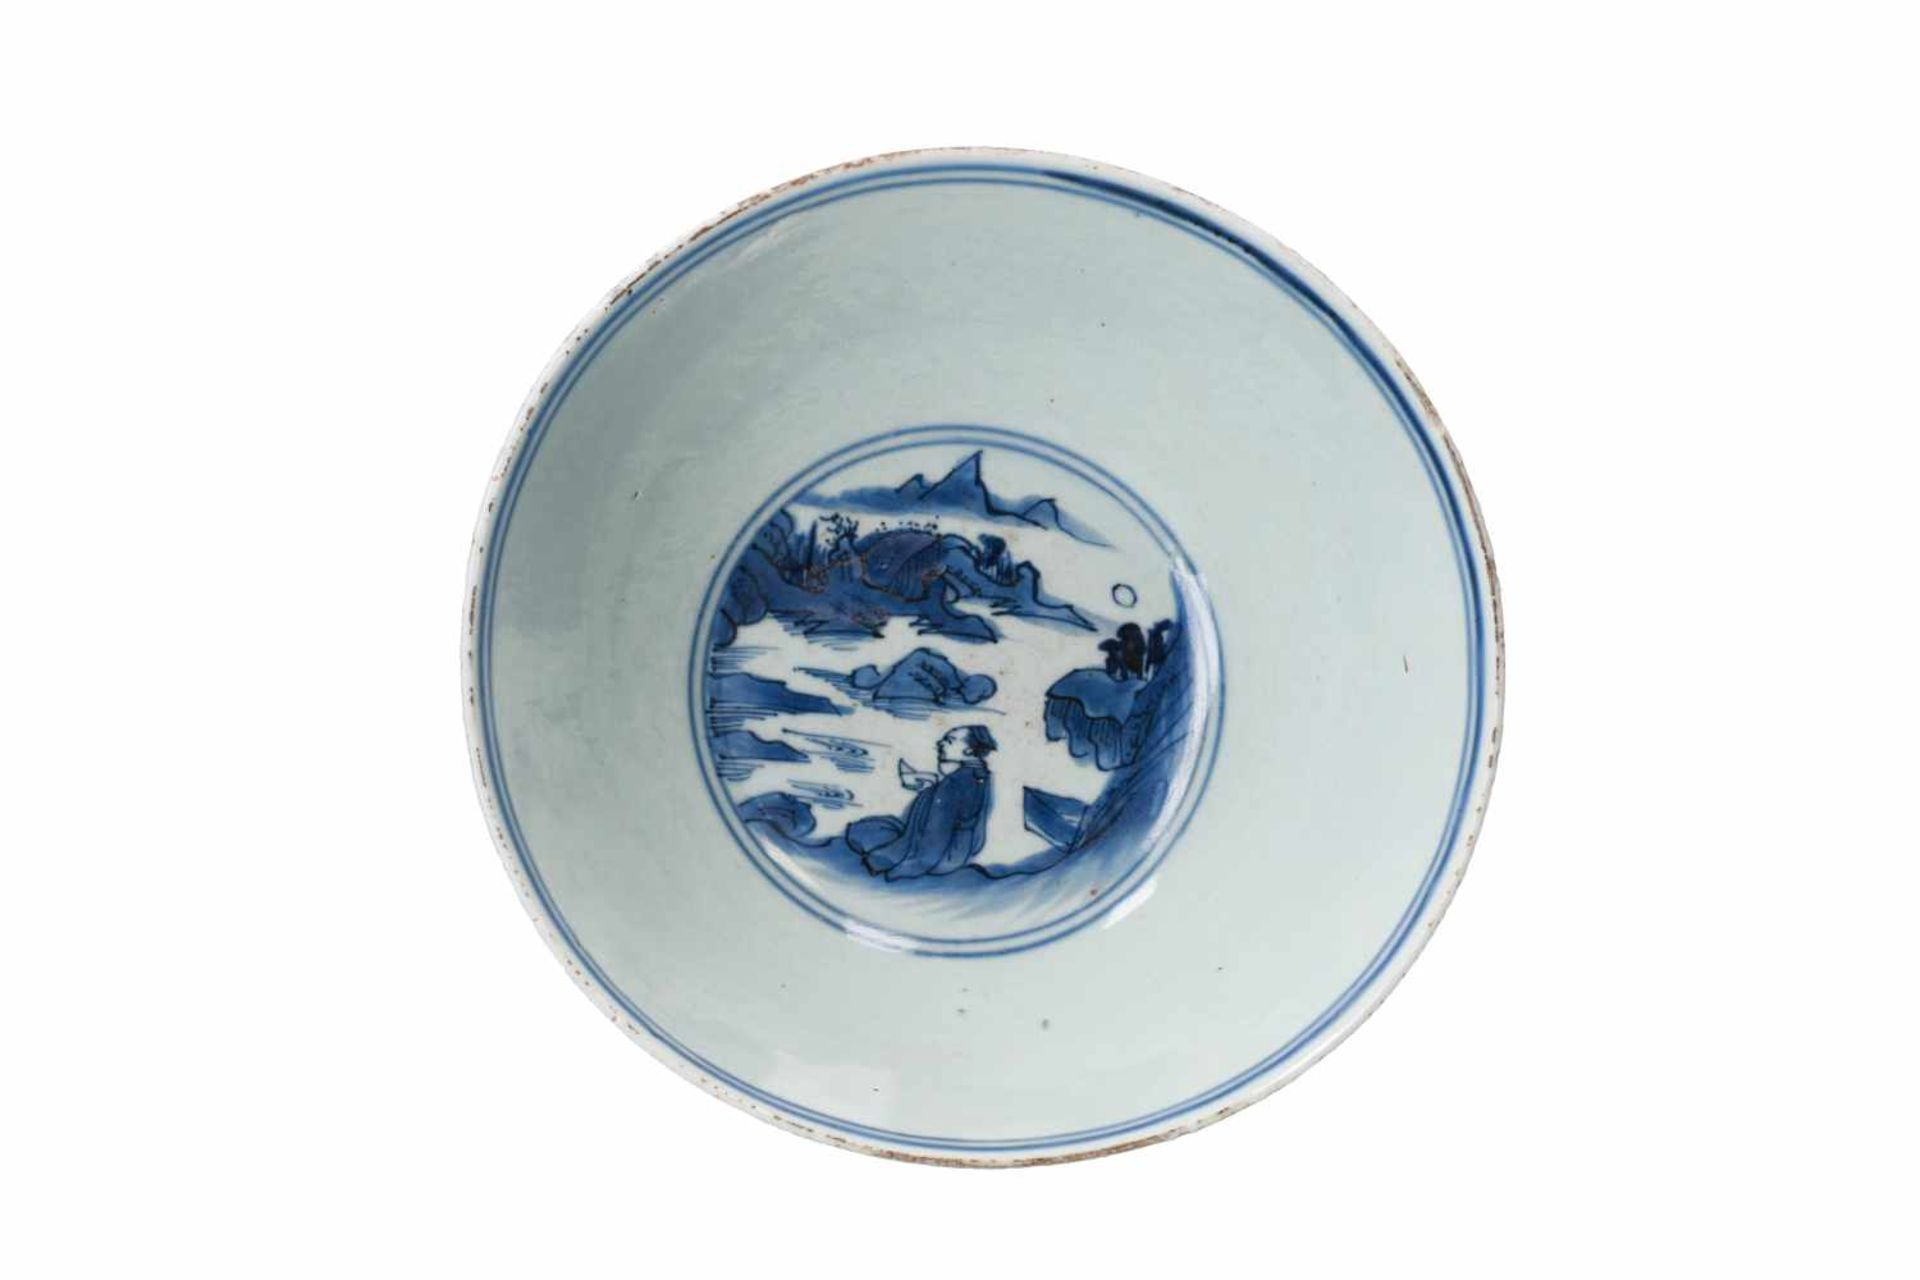 A blue and white porcelain bowl, decorated with a past-master in a mountainous river landscape. - Bild 5 aus 6